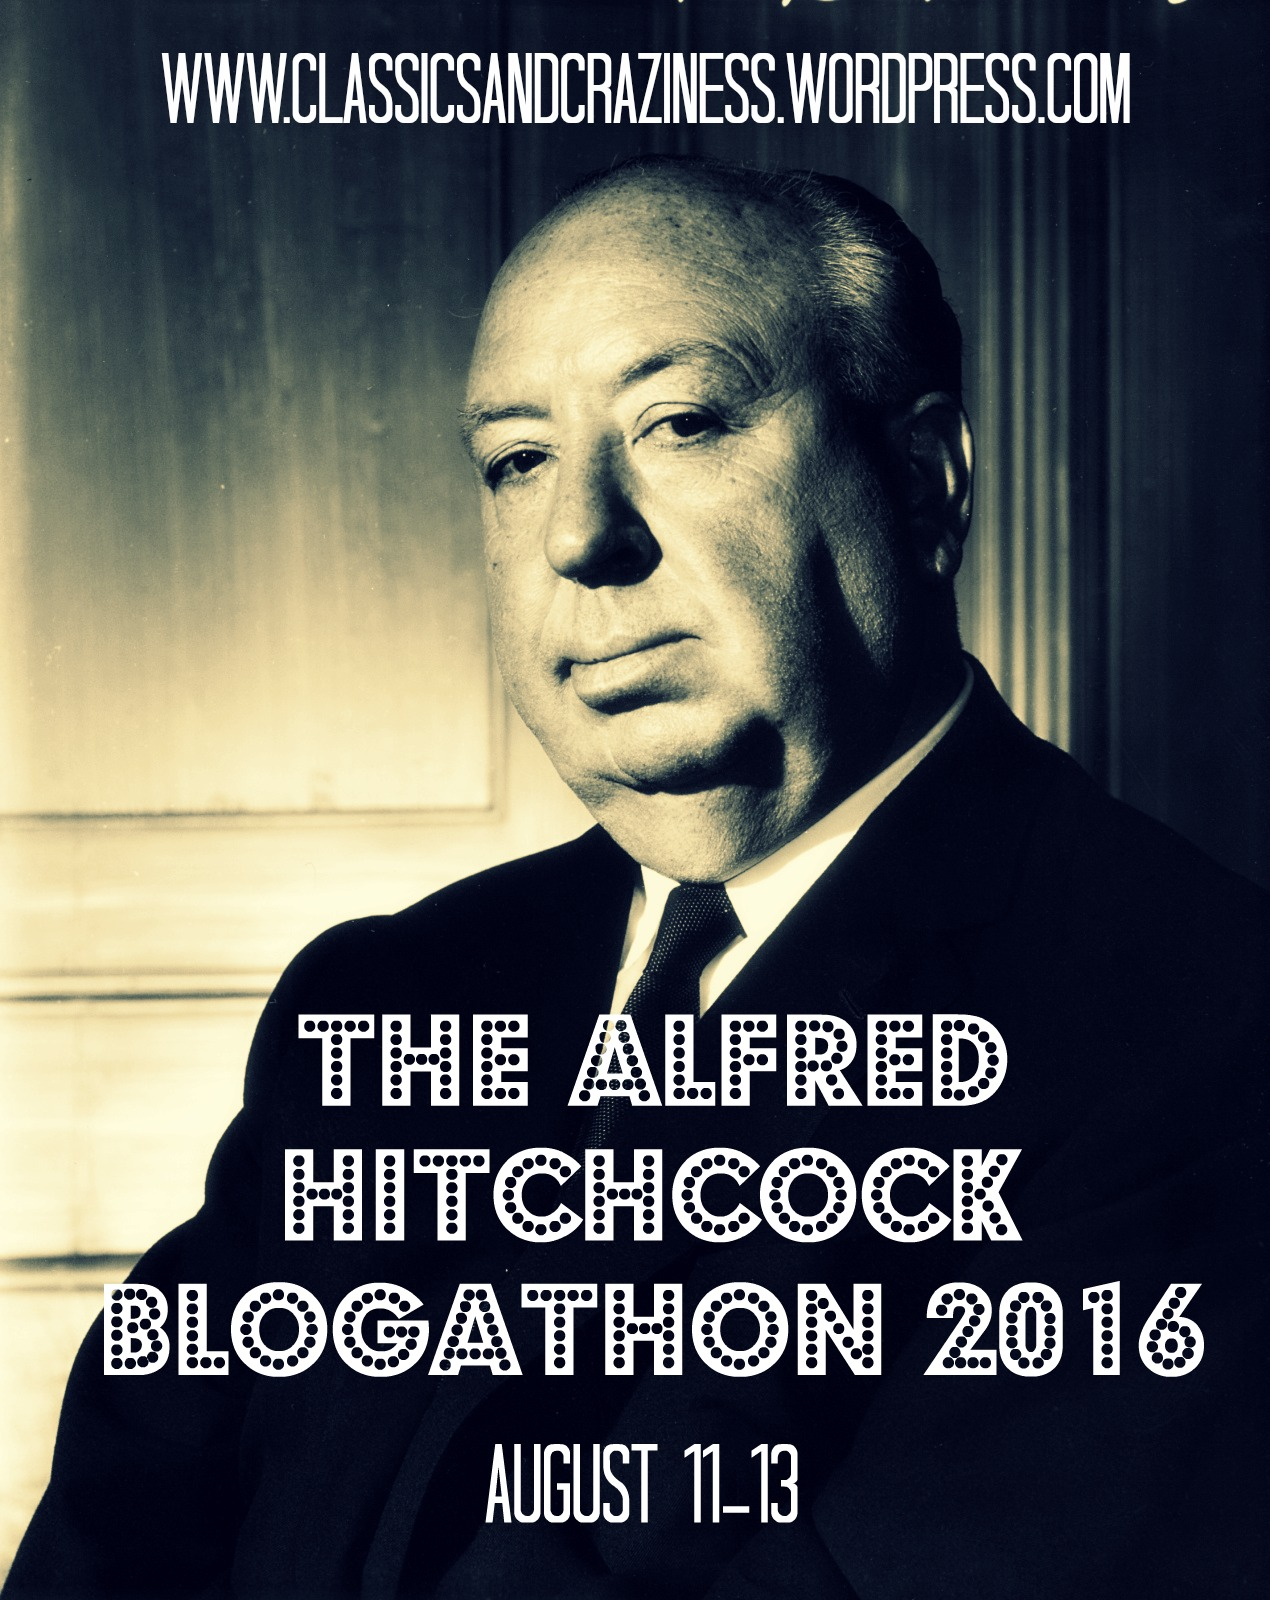 Hopefully writing about the film Hitchcock with Anthony Hopkins